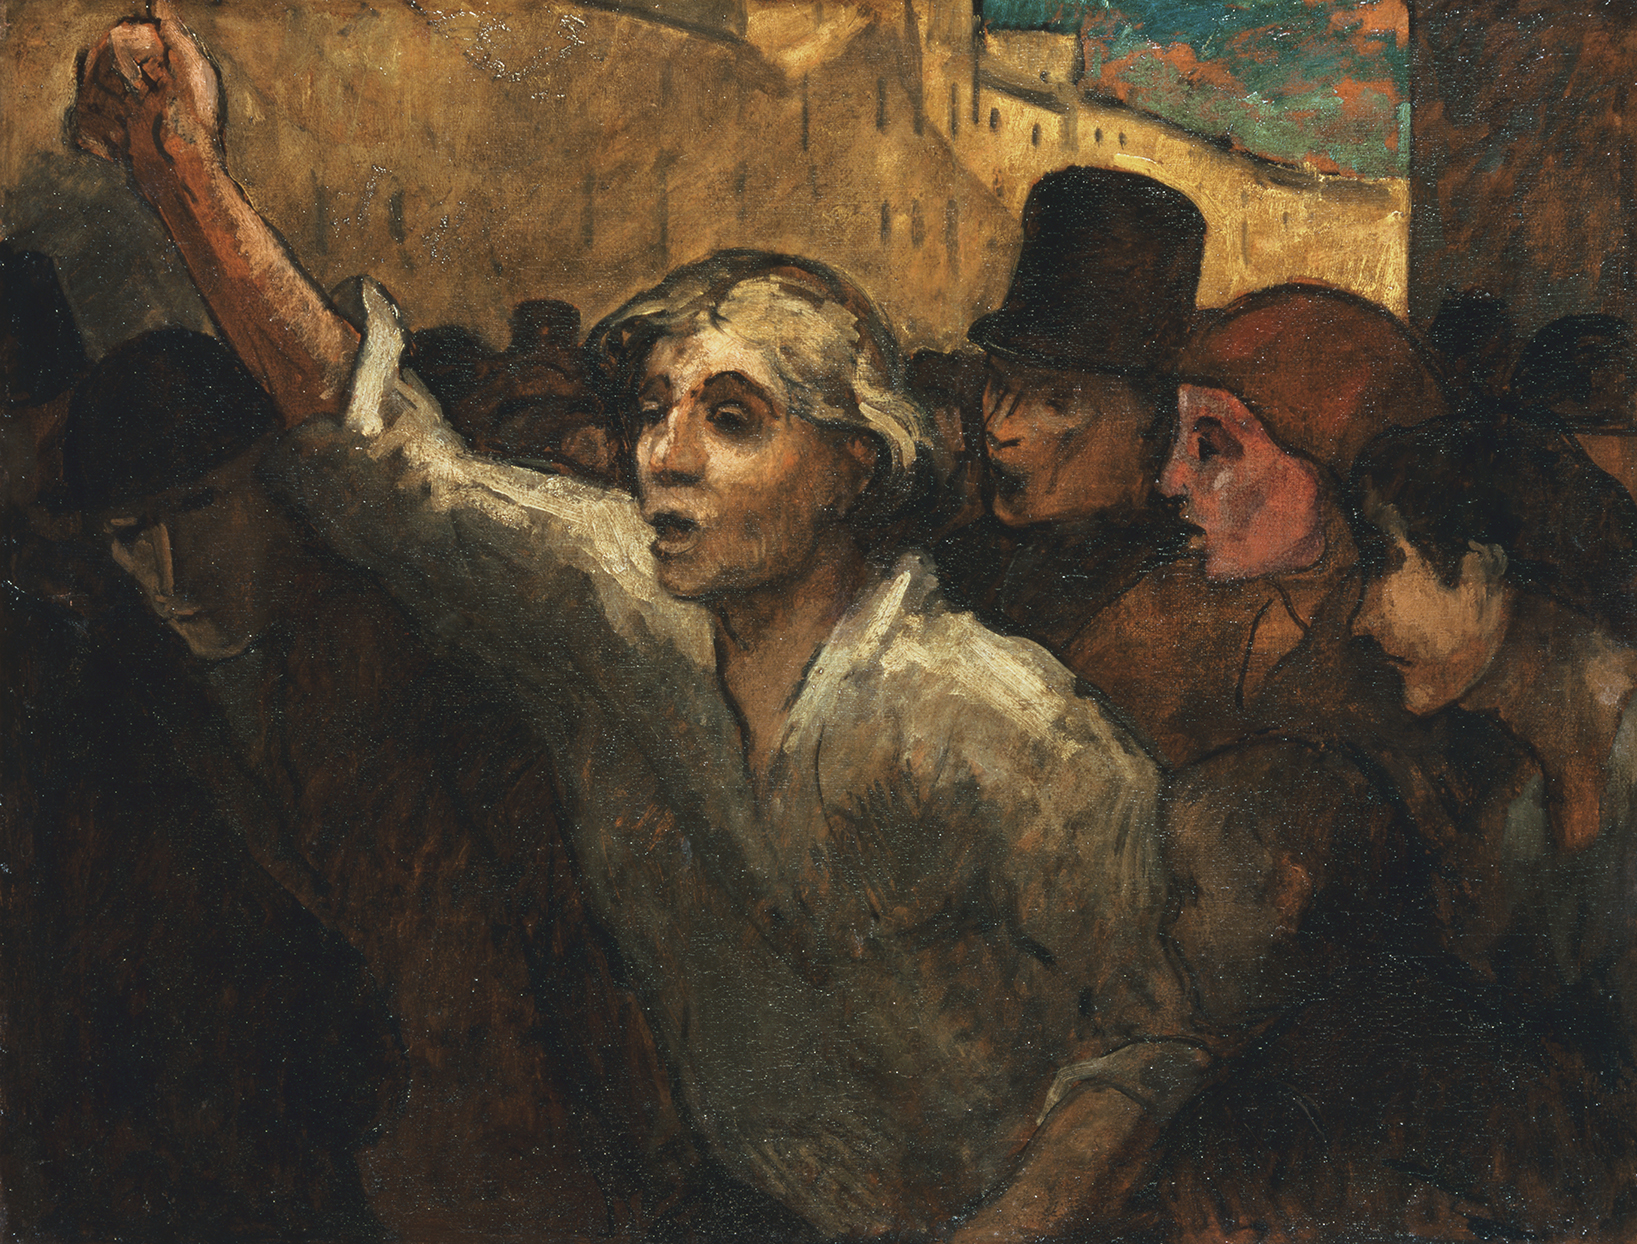 ModVis 010_Daumier_The Uprising crop.jpg